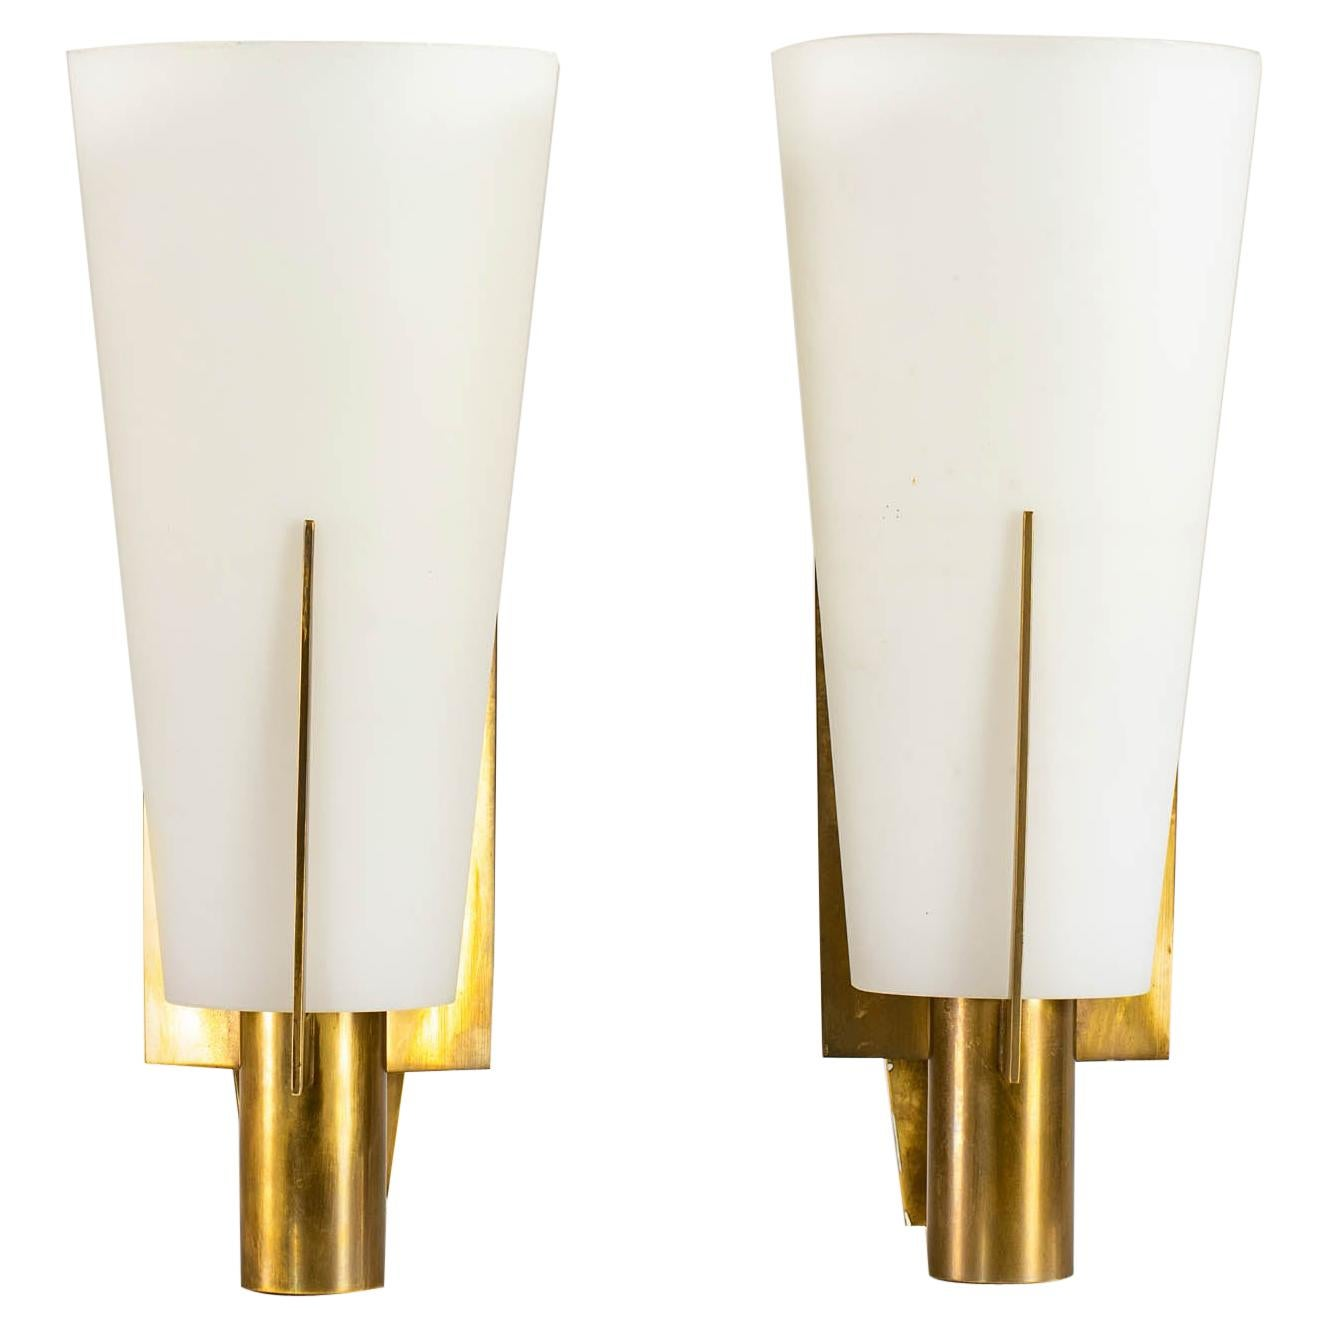 Stilnovo Set of Two Wall Lamps in Brass and Opaline Glass, 1950